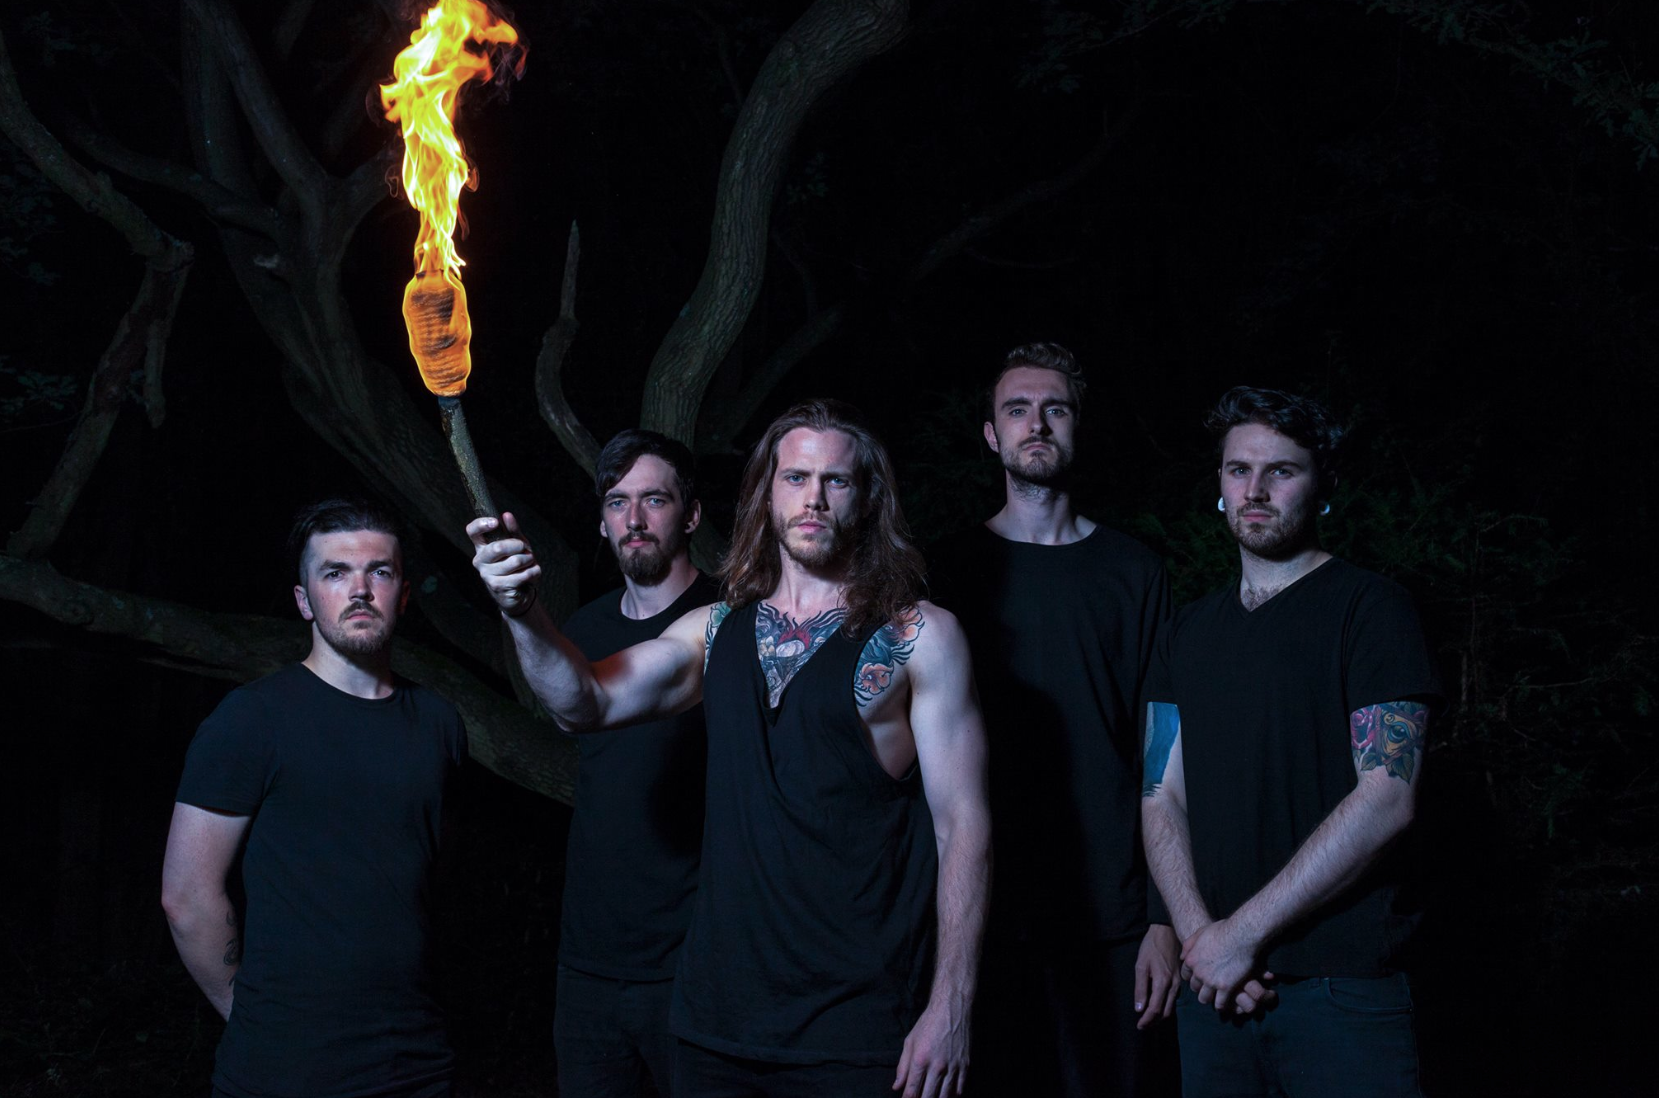 Confessions Of A Traitor premier new song 'Illuminating The Night'!